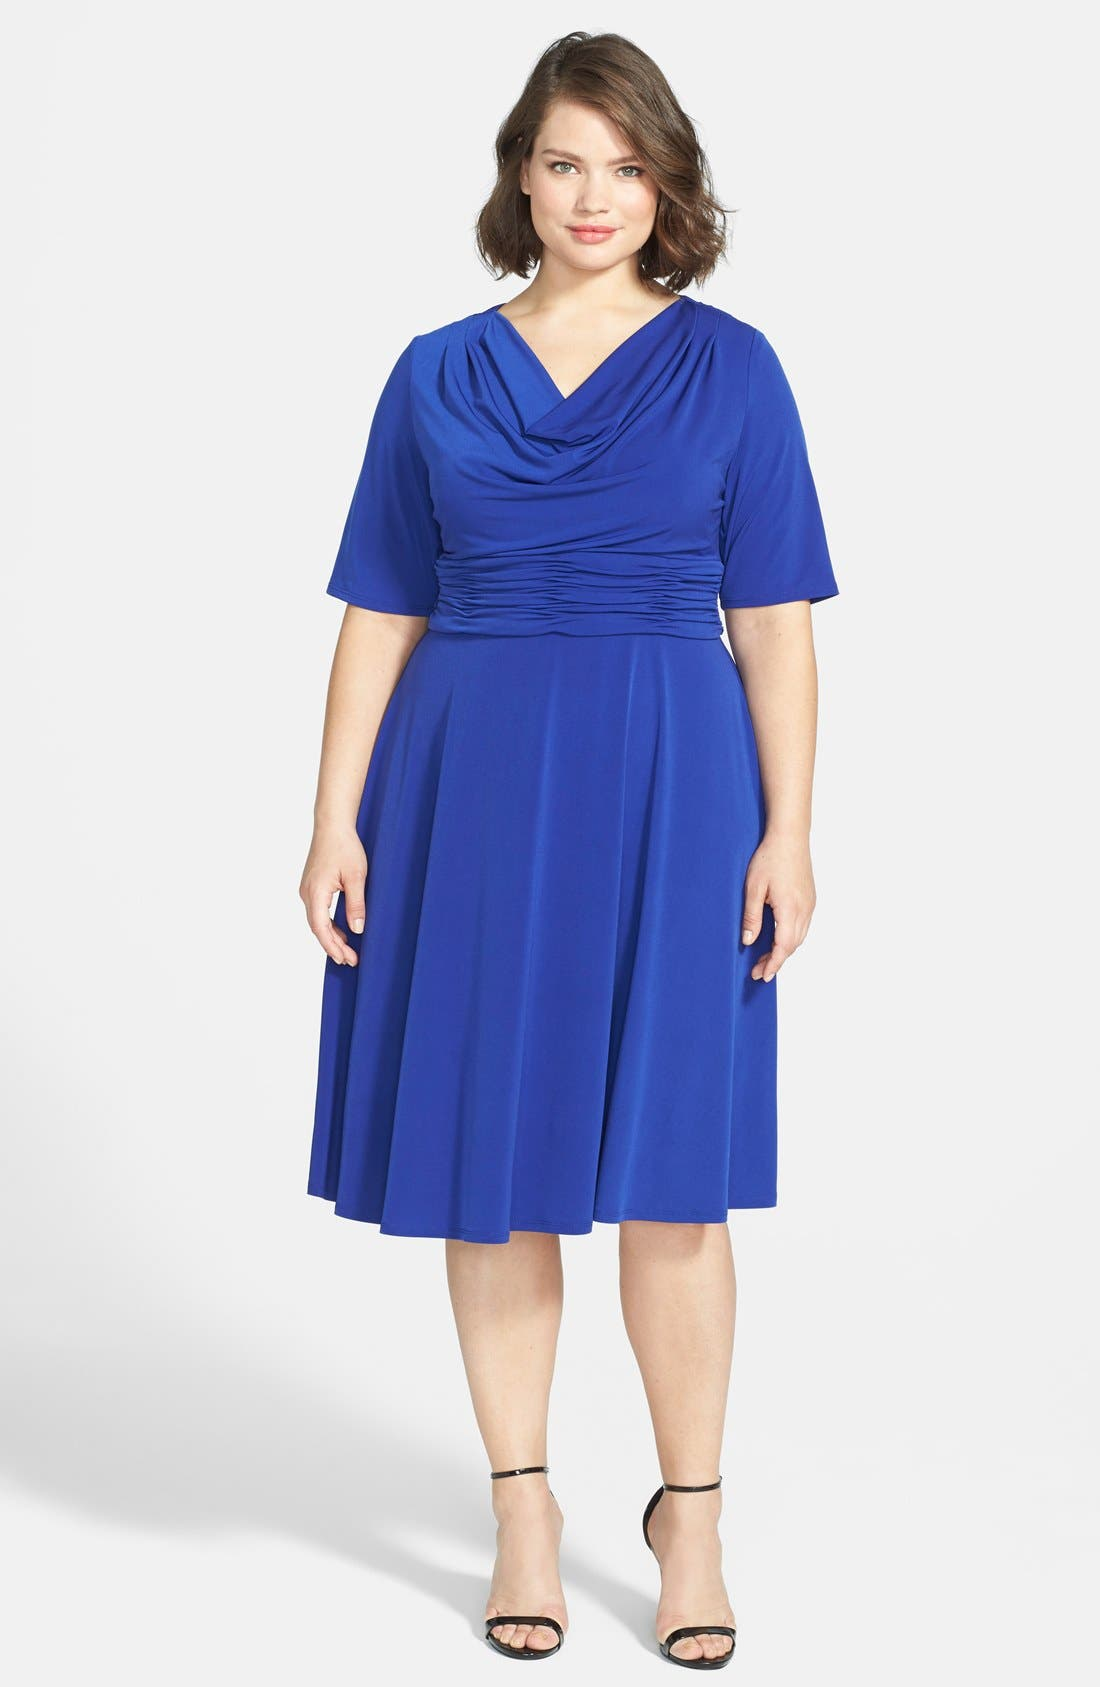 Alternate Image 1 Selected - Jessica Howard Ruched Waist Fit & Flare Dress (Plus Size)